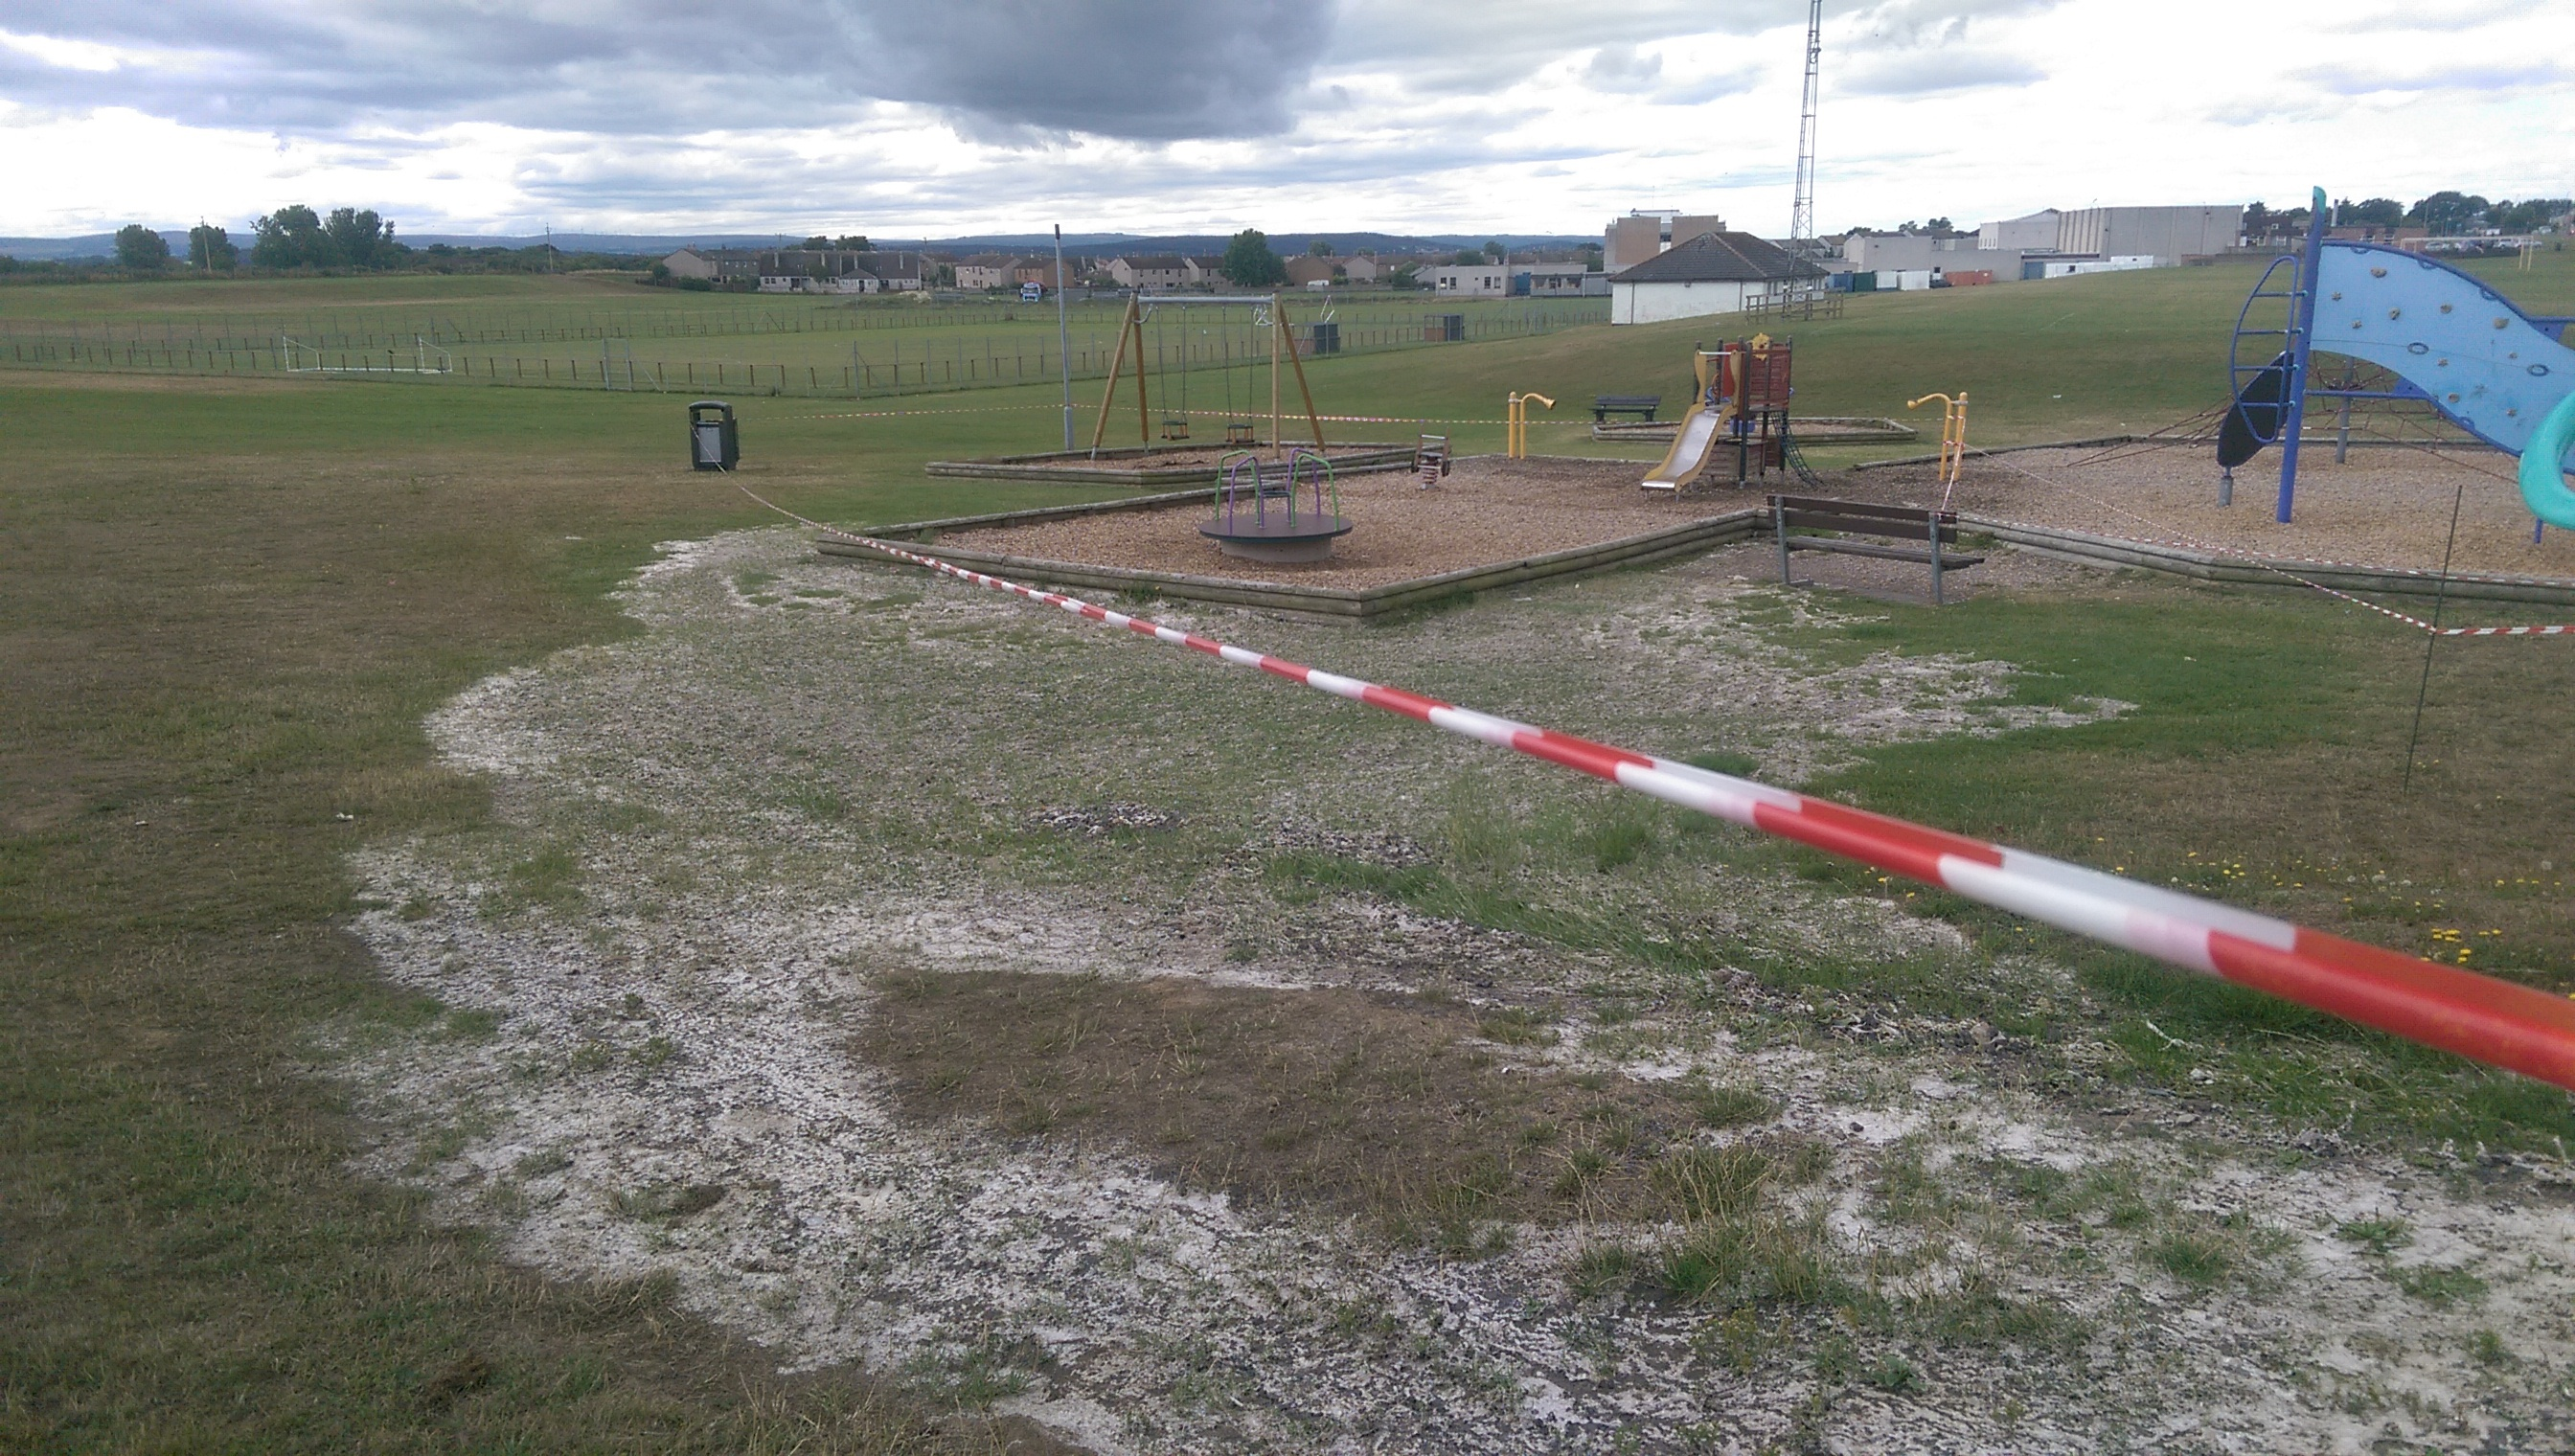 The play park has been sealed off at Coulardbank Road.